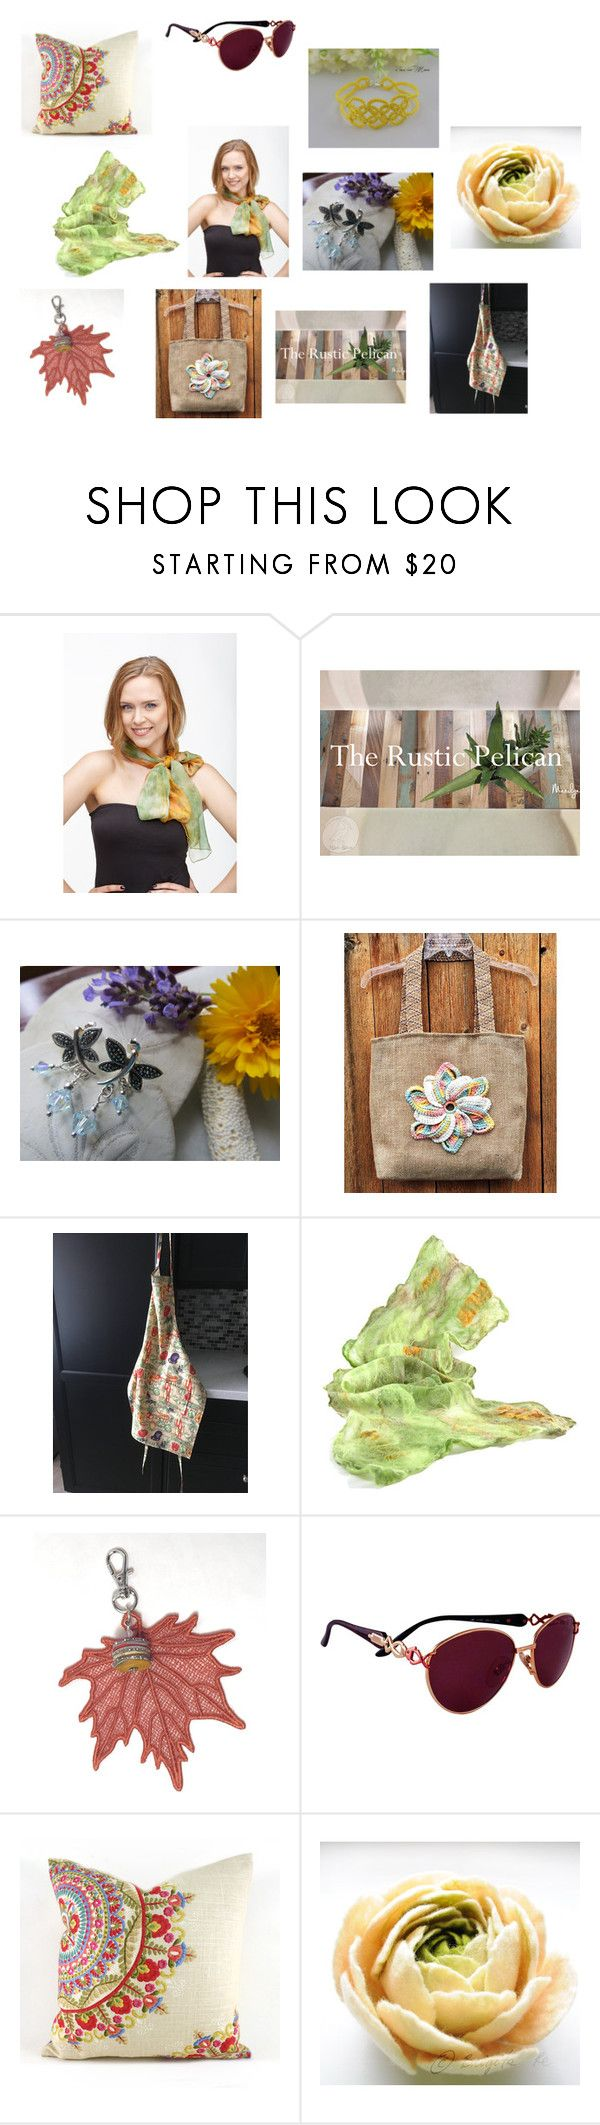 """Per te mamma"" by acasaconmanu ❤ liked on Polyvore featuring Simonetta Ravizza and Giallo"